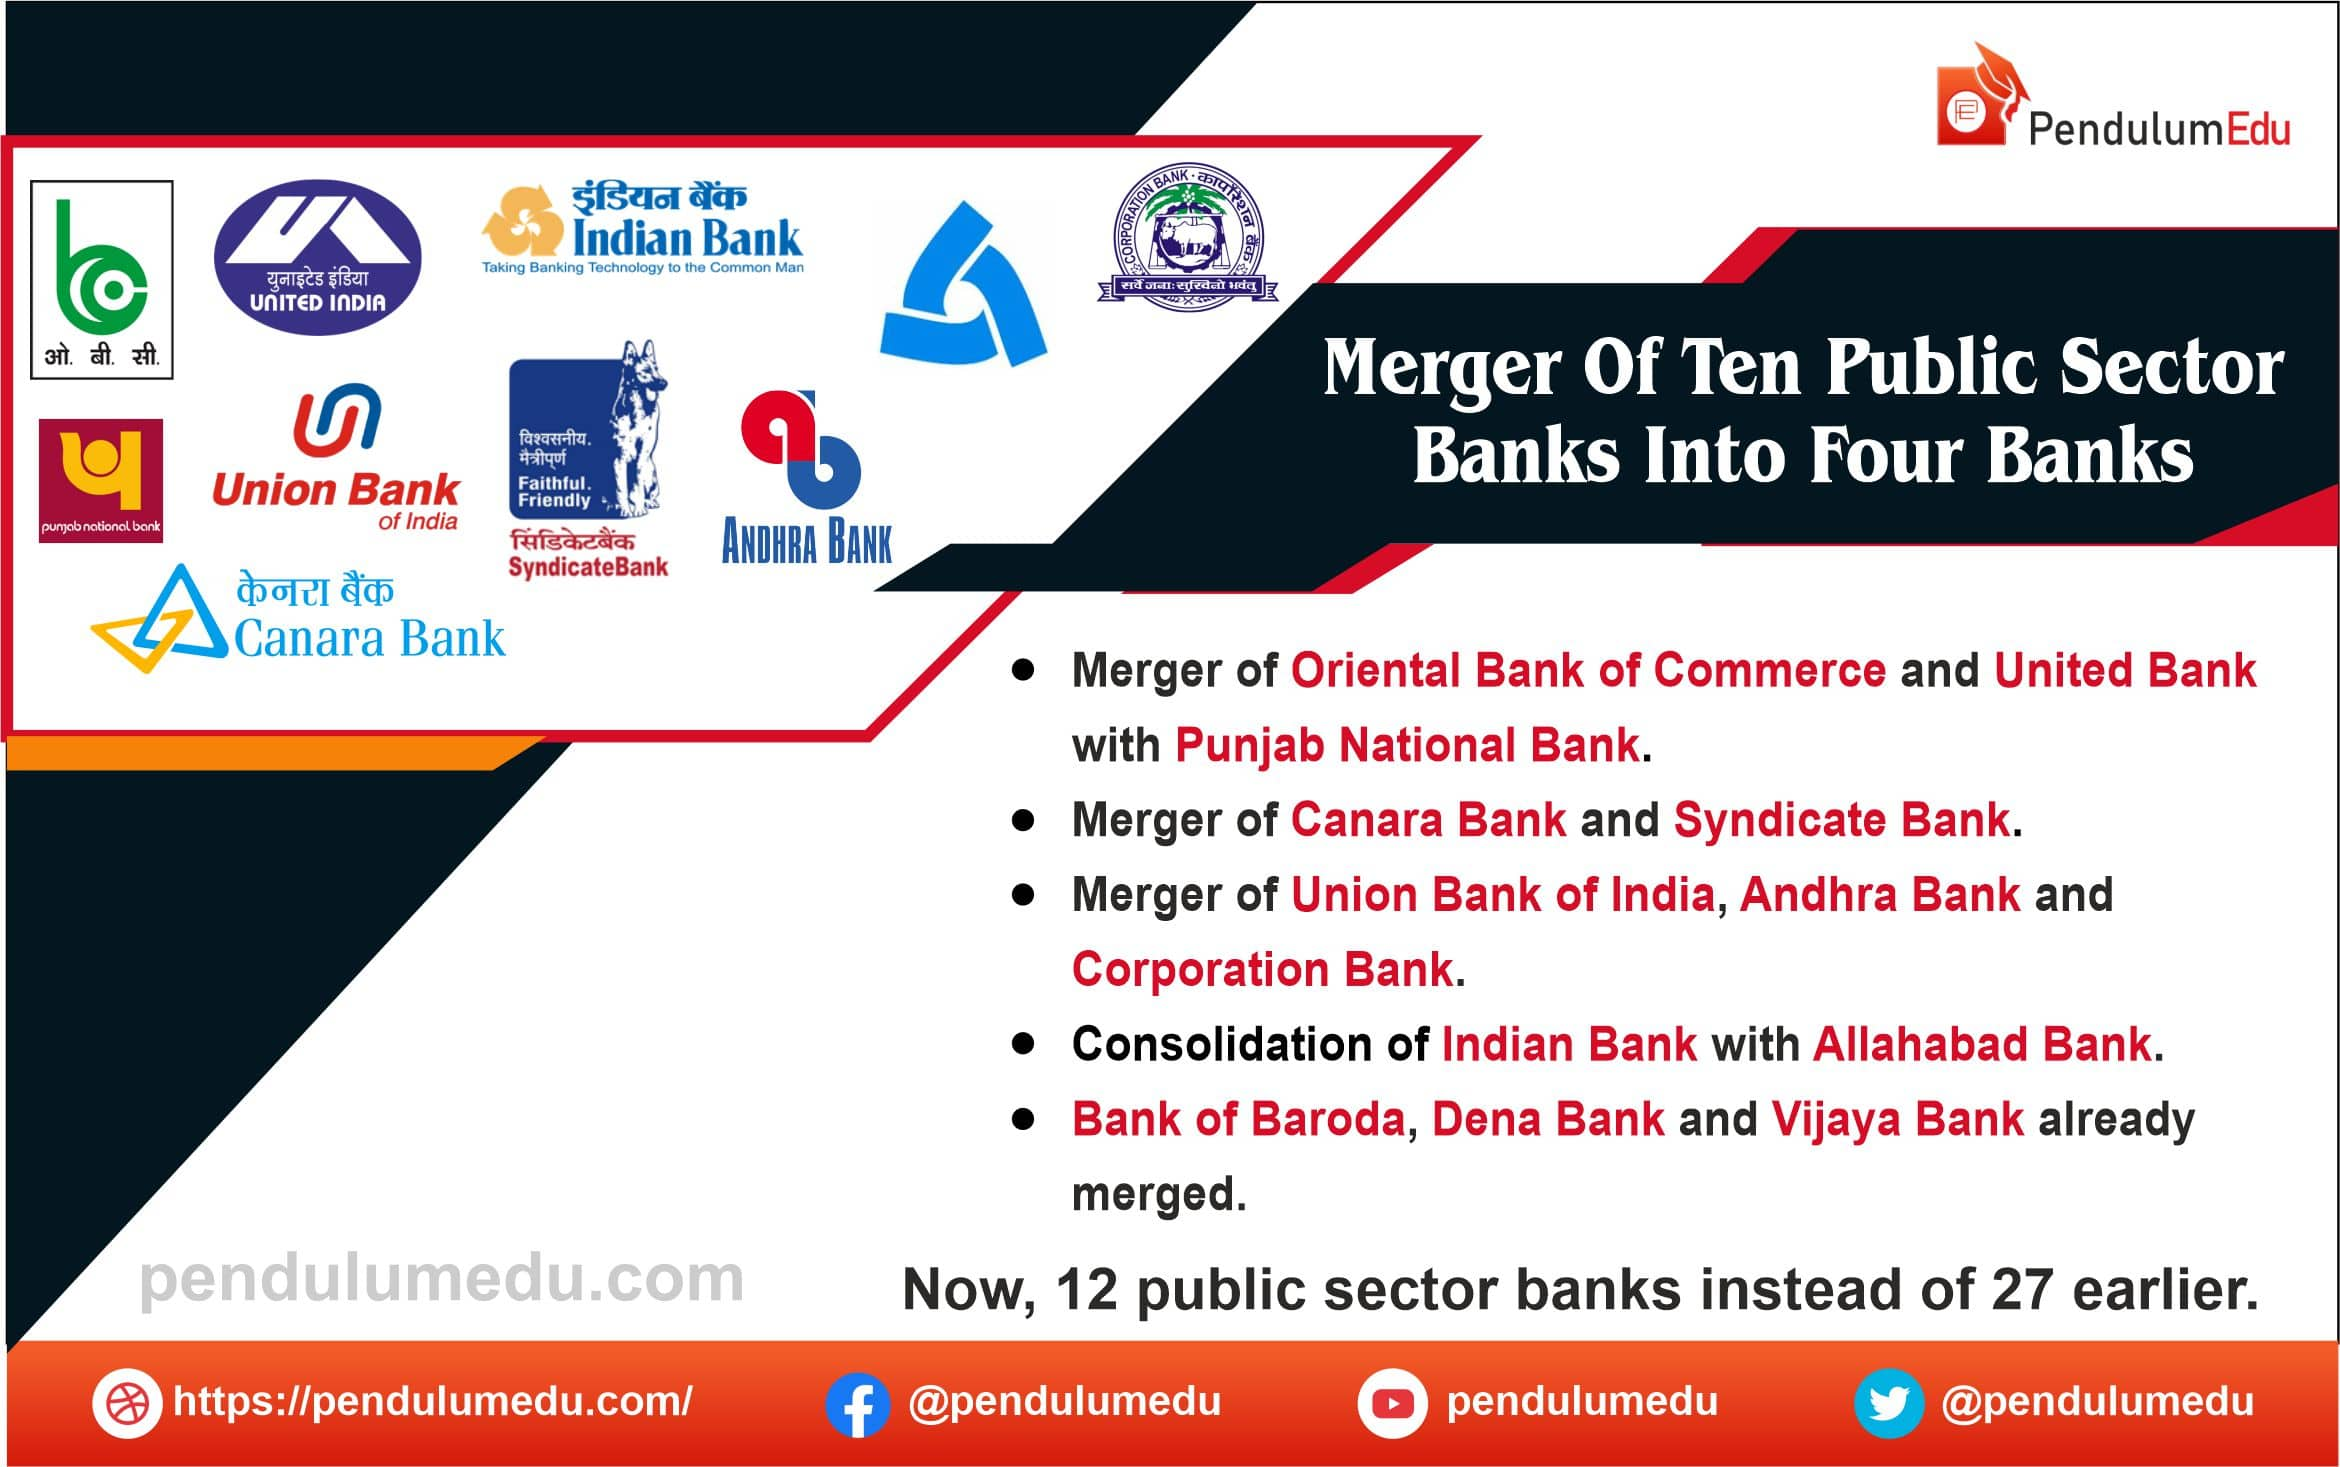 Merger of 10 PSU Banks into 4 Banks